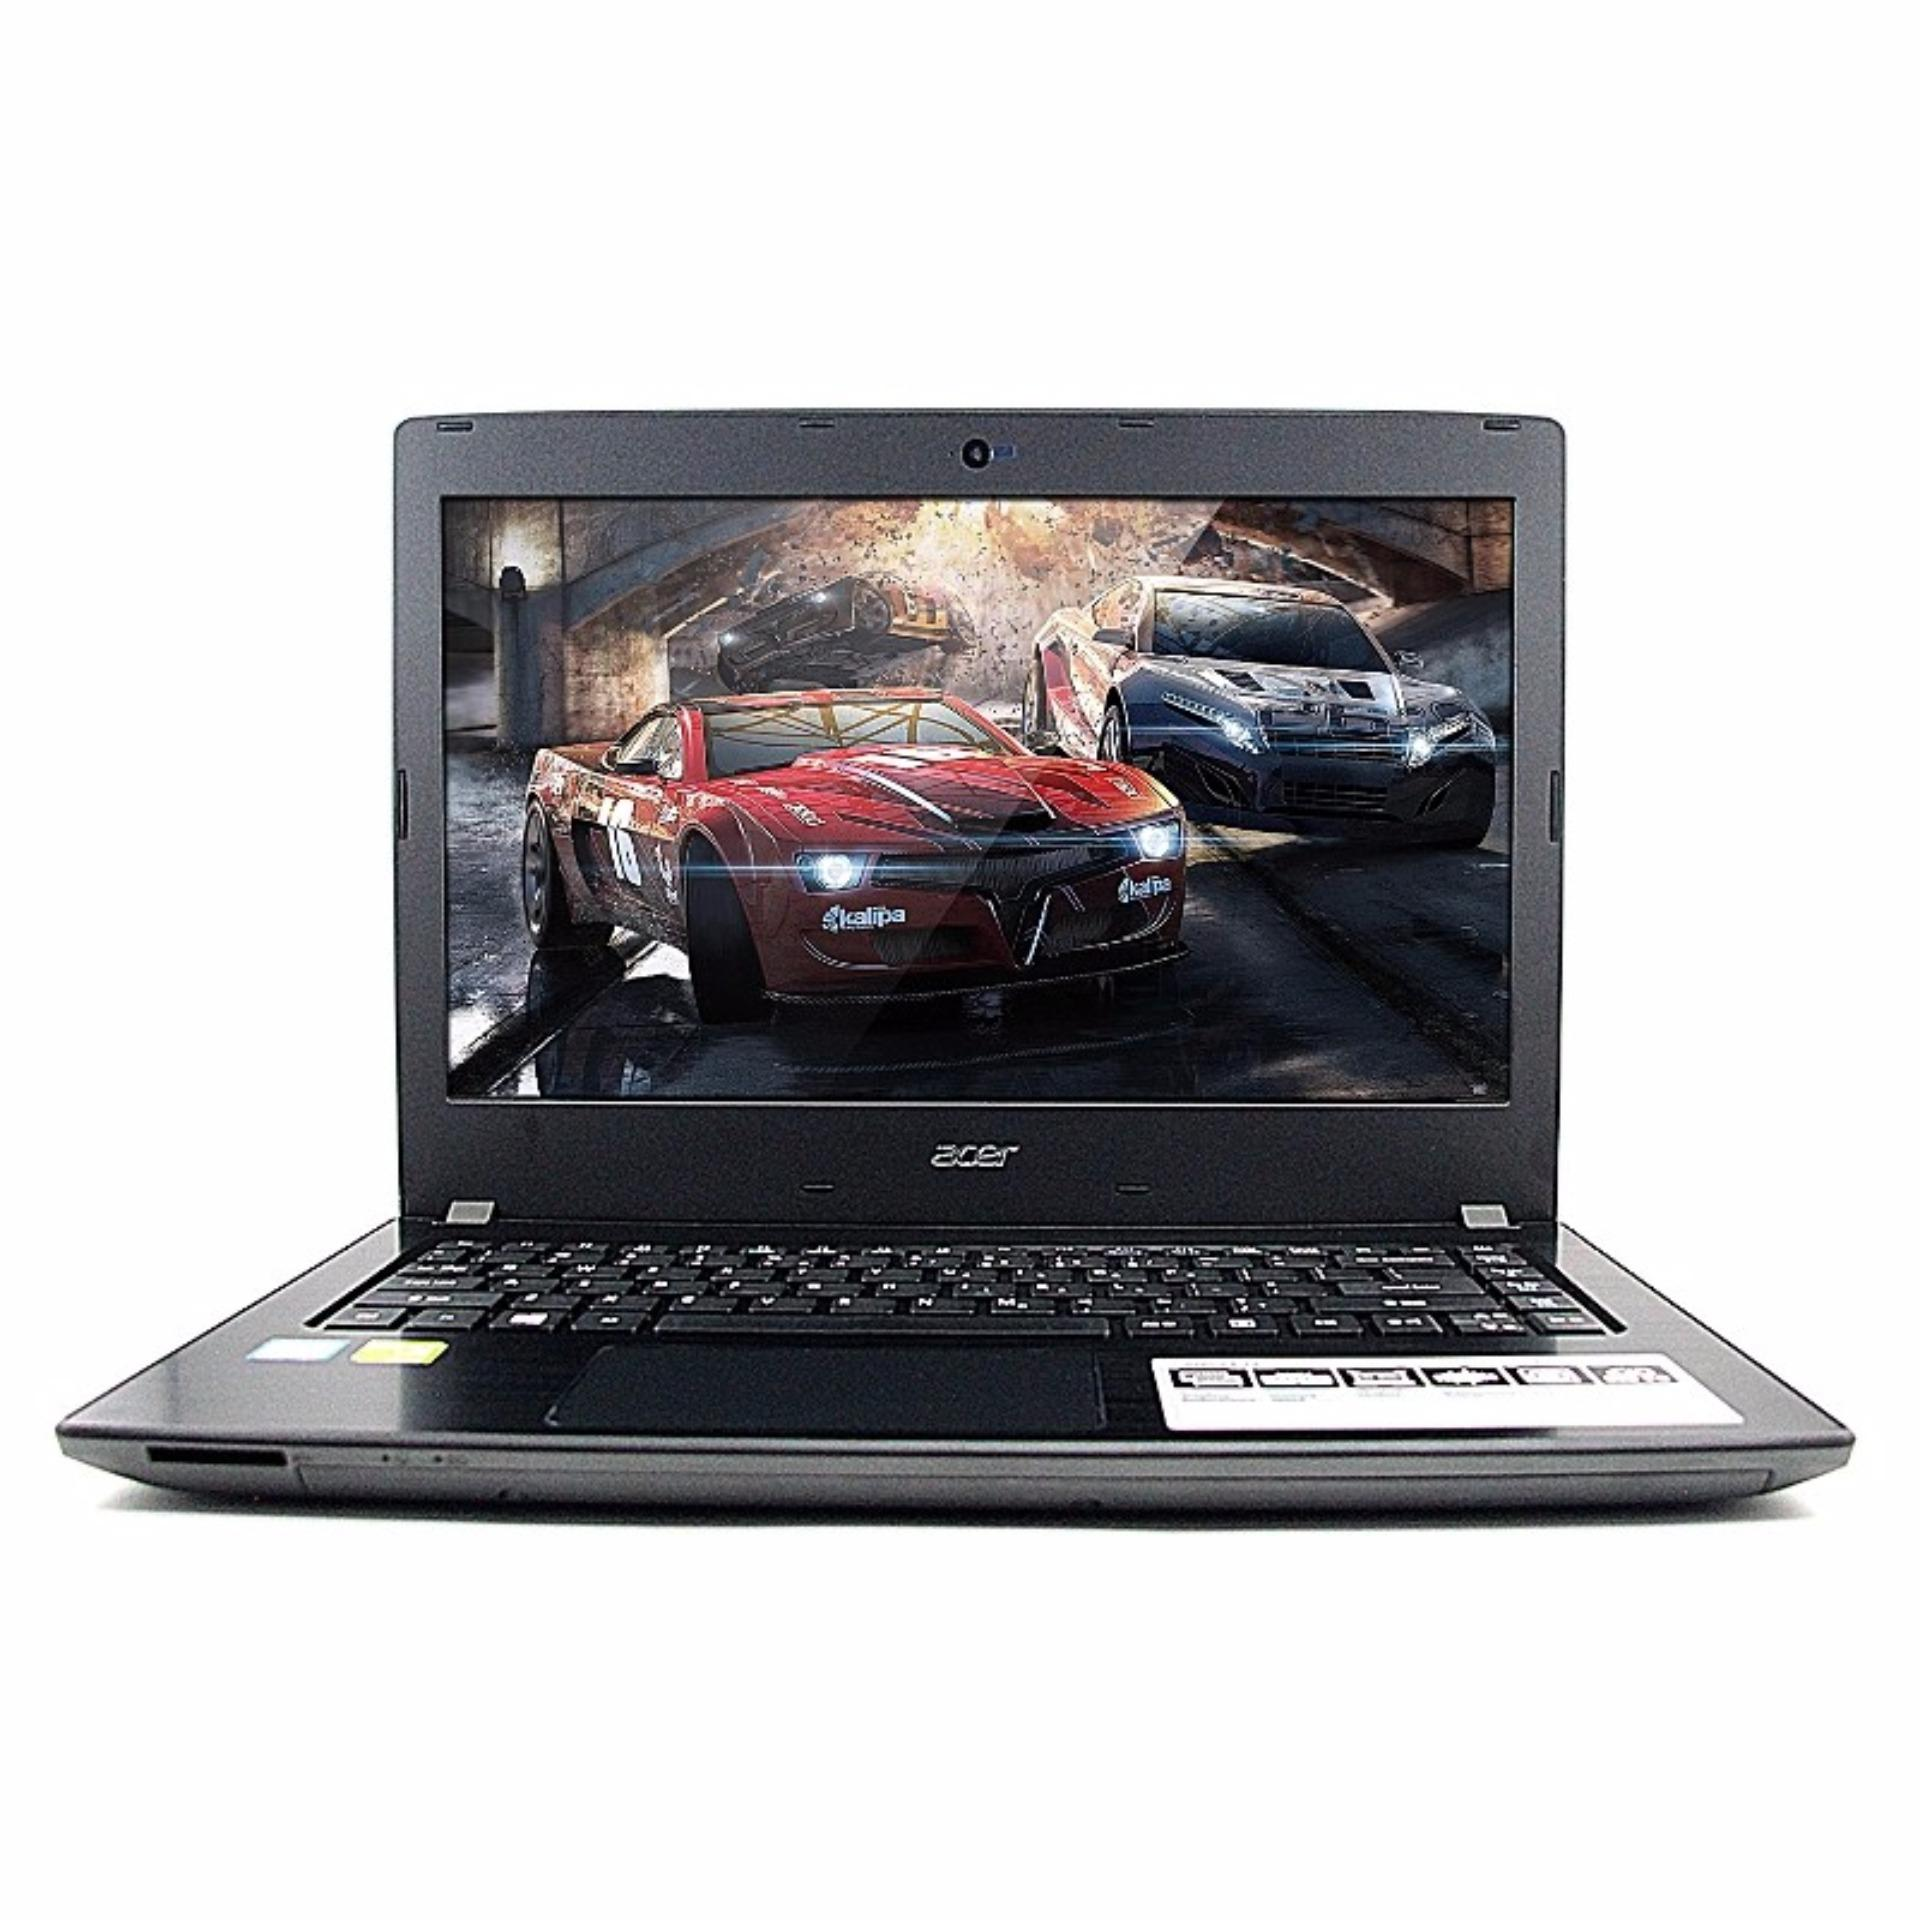 ACER E5 475G 541U CORE I5 7200 2,5GHZ RAM 4GB HDD 1TB NVIDIA 940 2GB NO OS 14inc